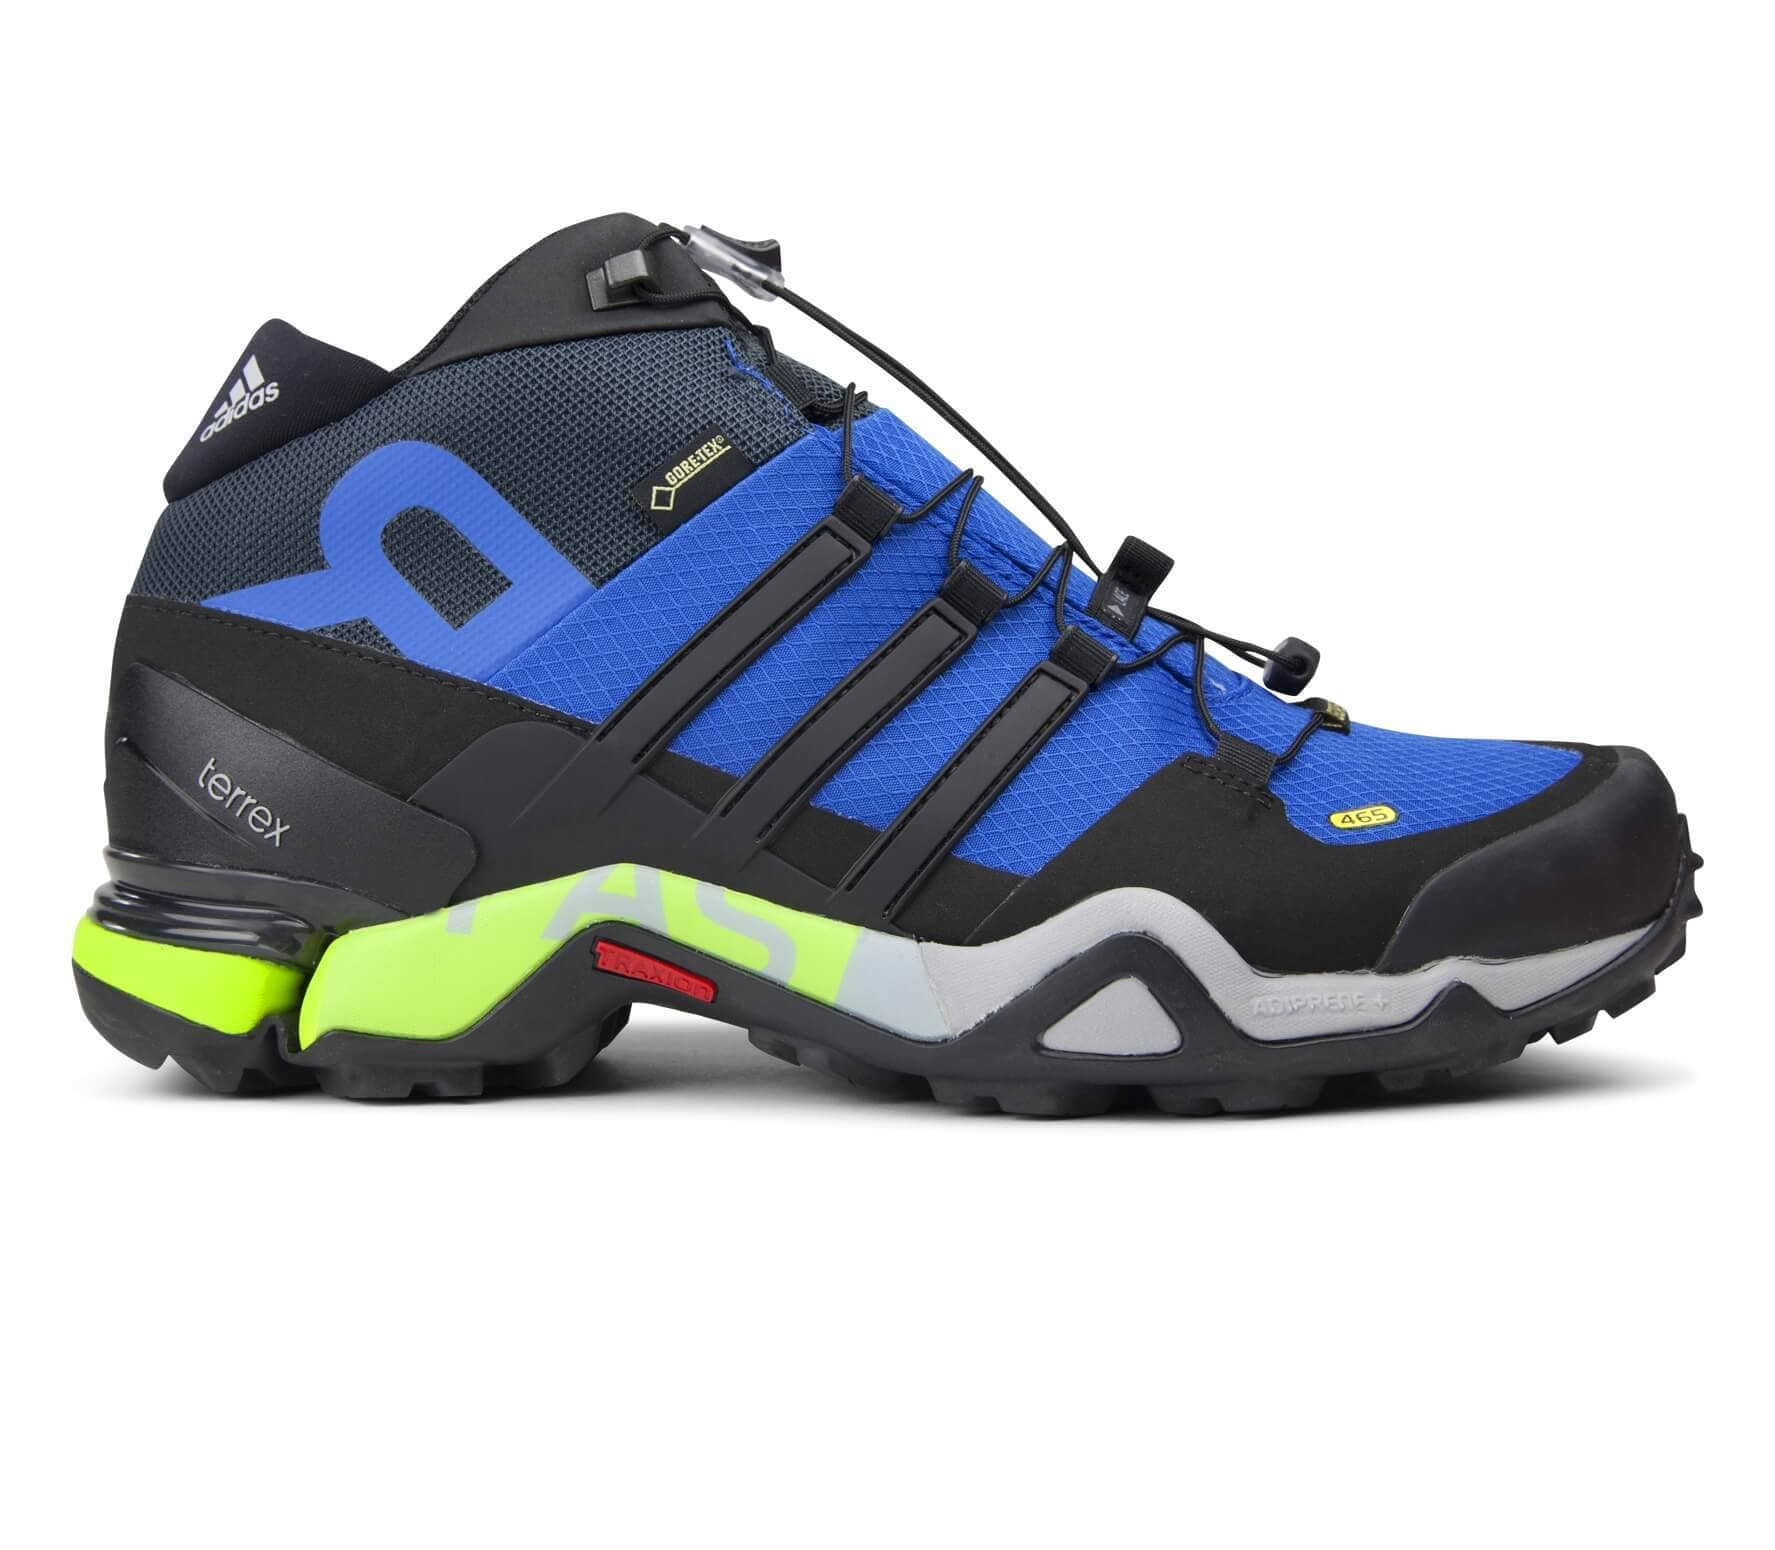 85f9a826e Adidas - Terrex Fast R Mid GTX men s multi-functional shoes (blue black